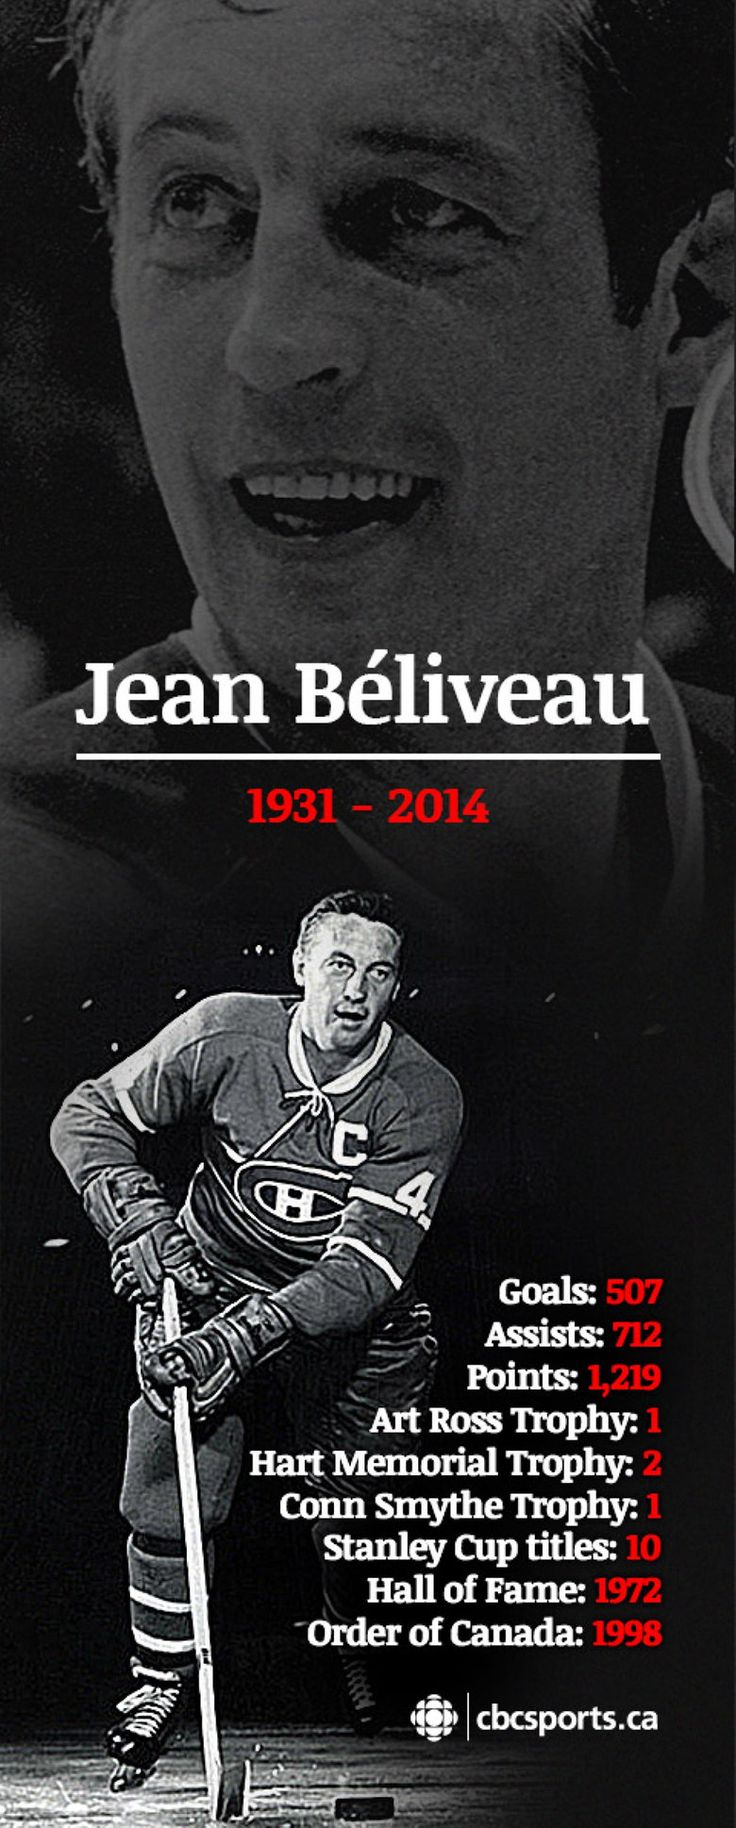 Jean Béliveau: His career in numbers